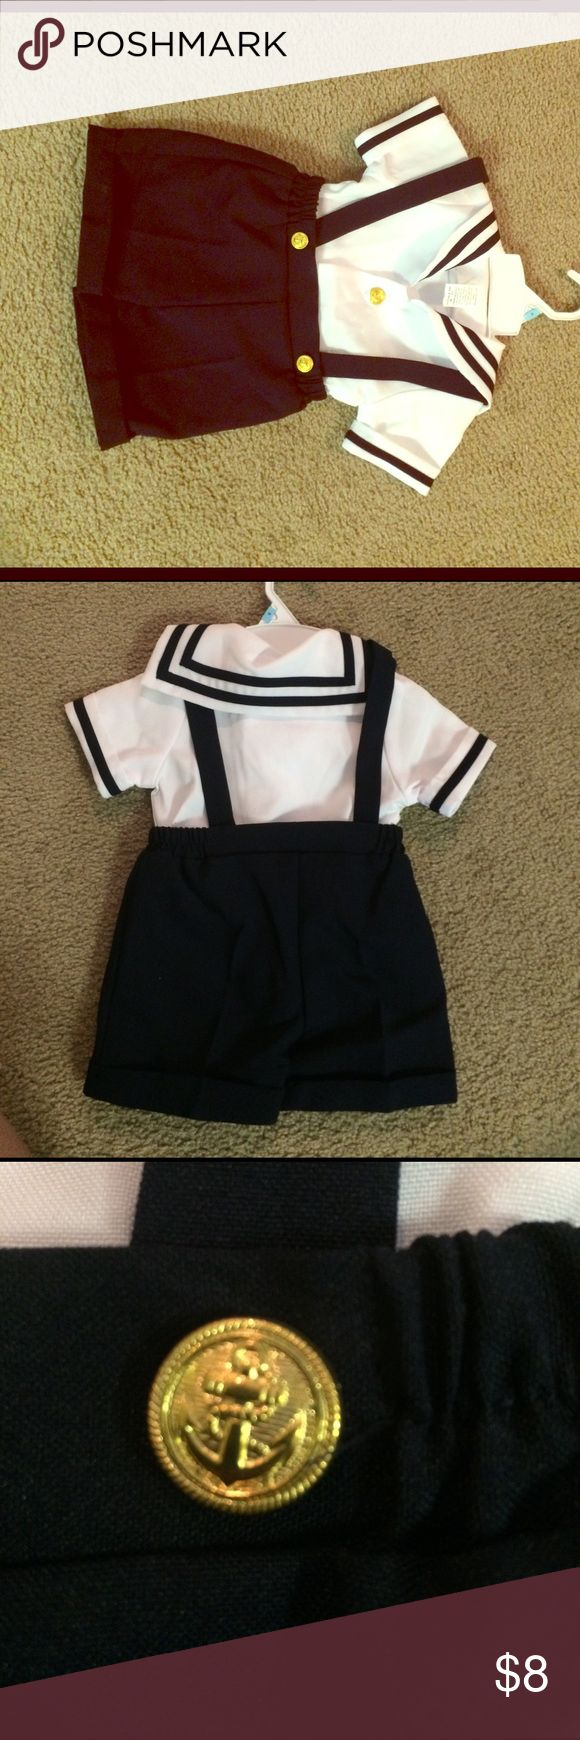 Boys sailor outfit new never worn Tag says medium but I guess it's 12 months bought for my sons first birthday but went in a different direction! Brand new never worn! Matching Sets